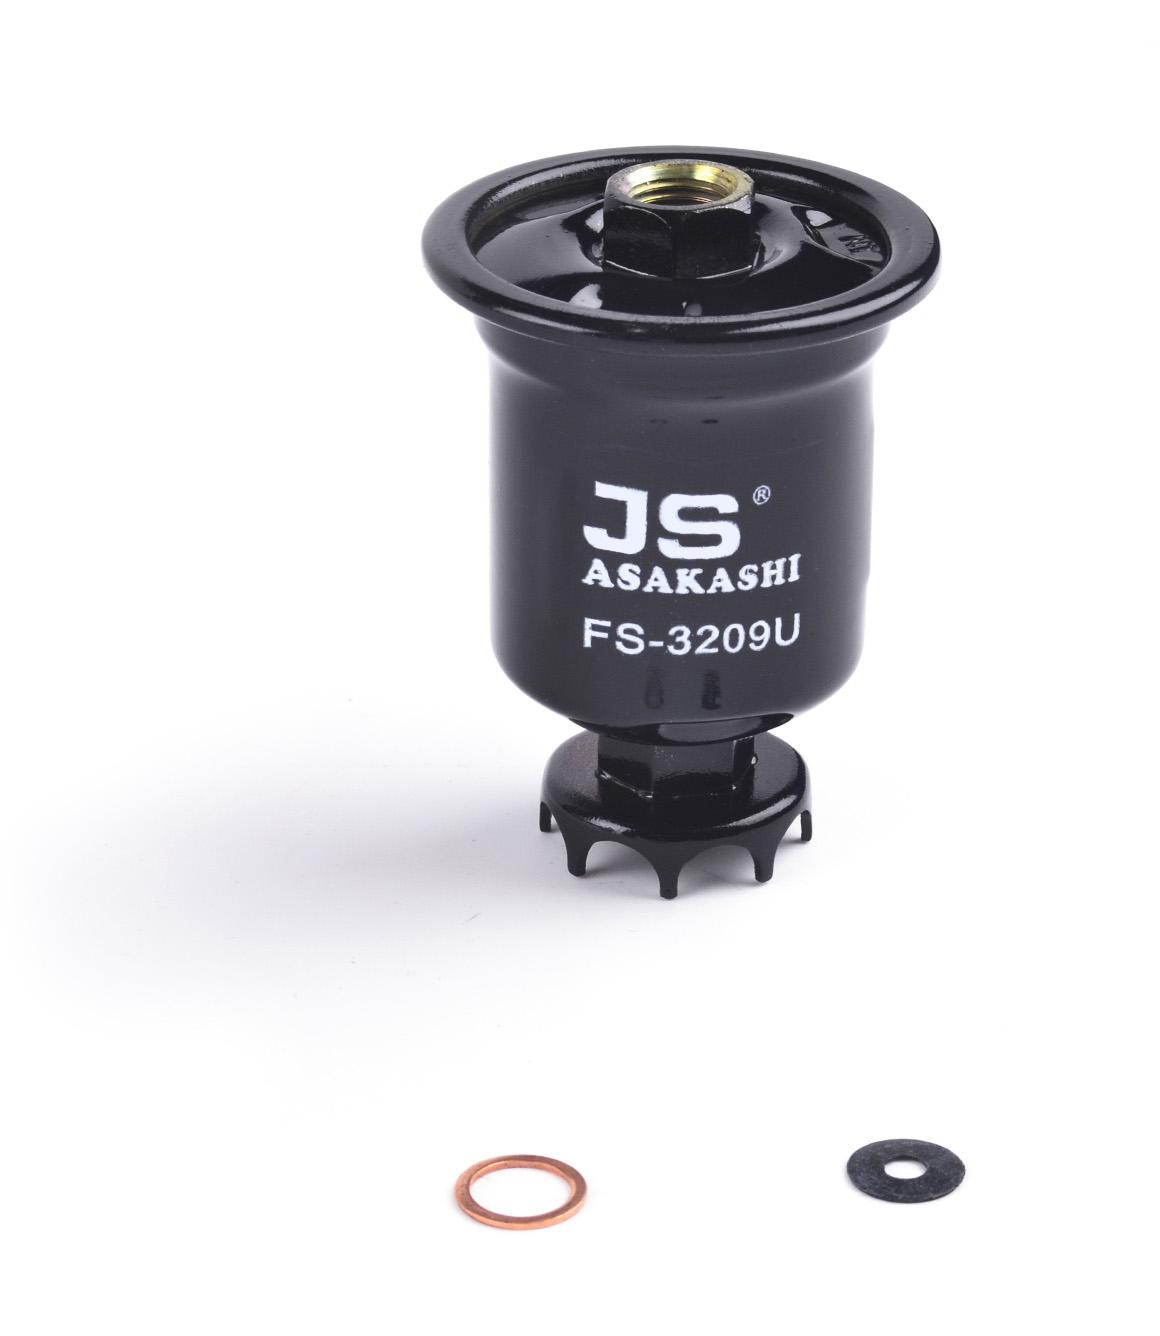 Fs3209z Efi Fuel Filter Fs 1025 Ff2176 Z515 Mr204132 2001 Accord Mitsubishi Cars Lancer Ce2 4g93 4 18l Petrol Mpfi 1999 2003